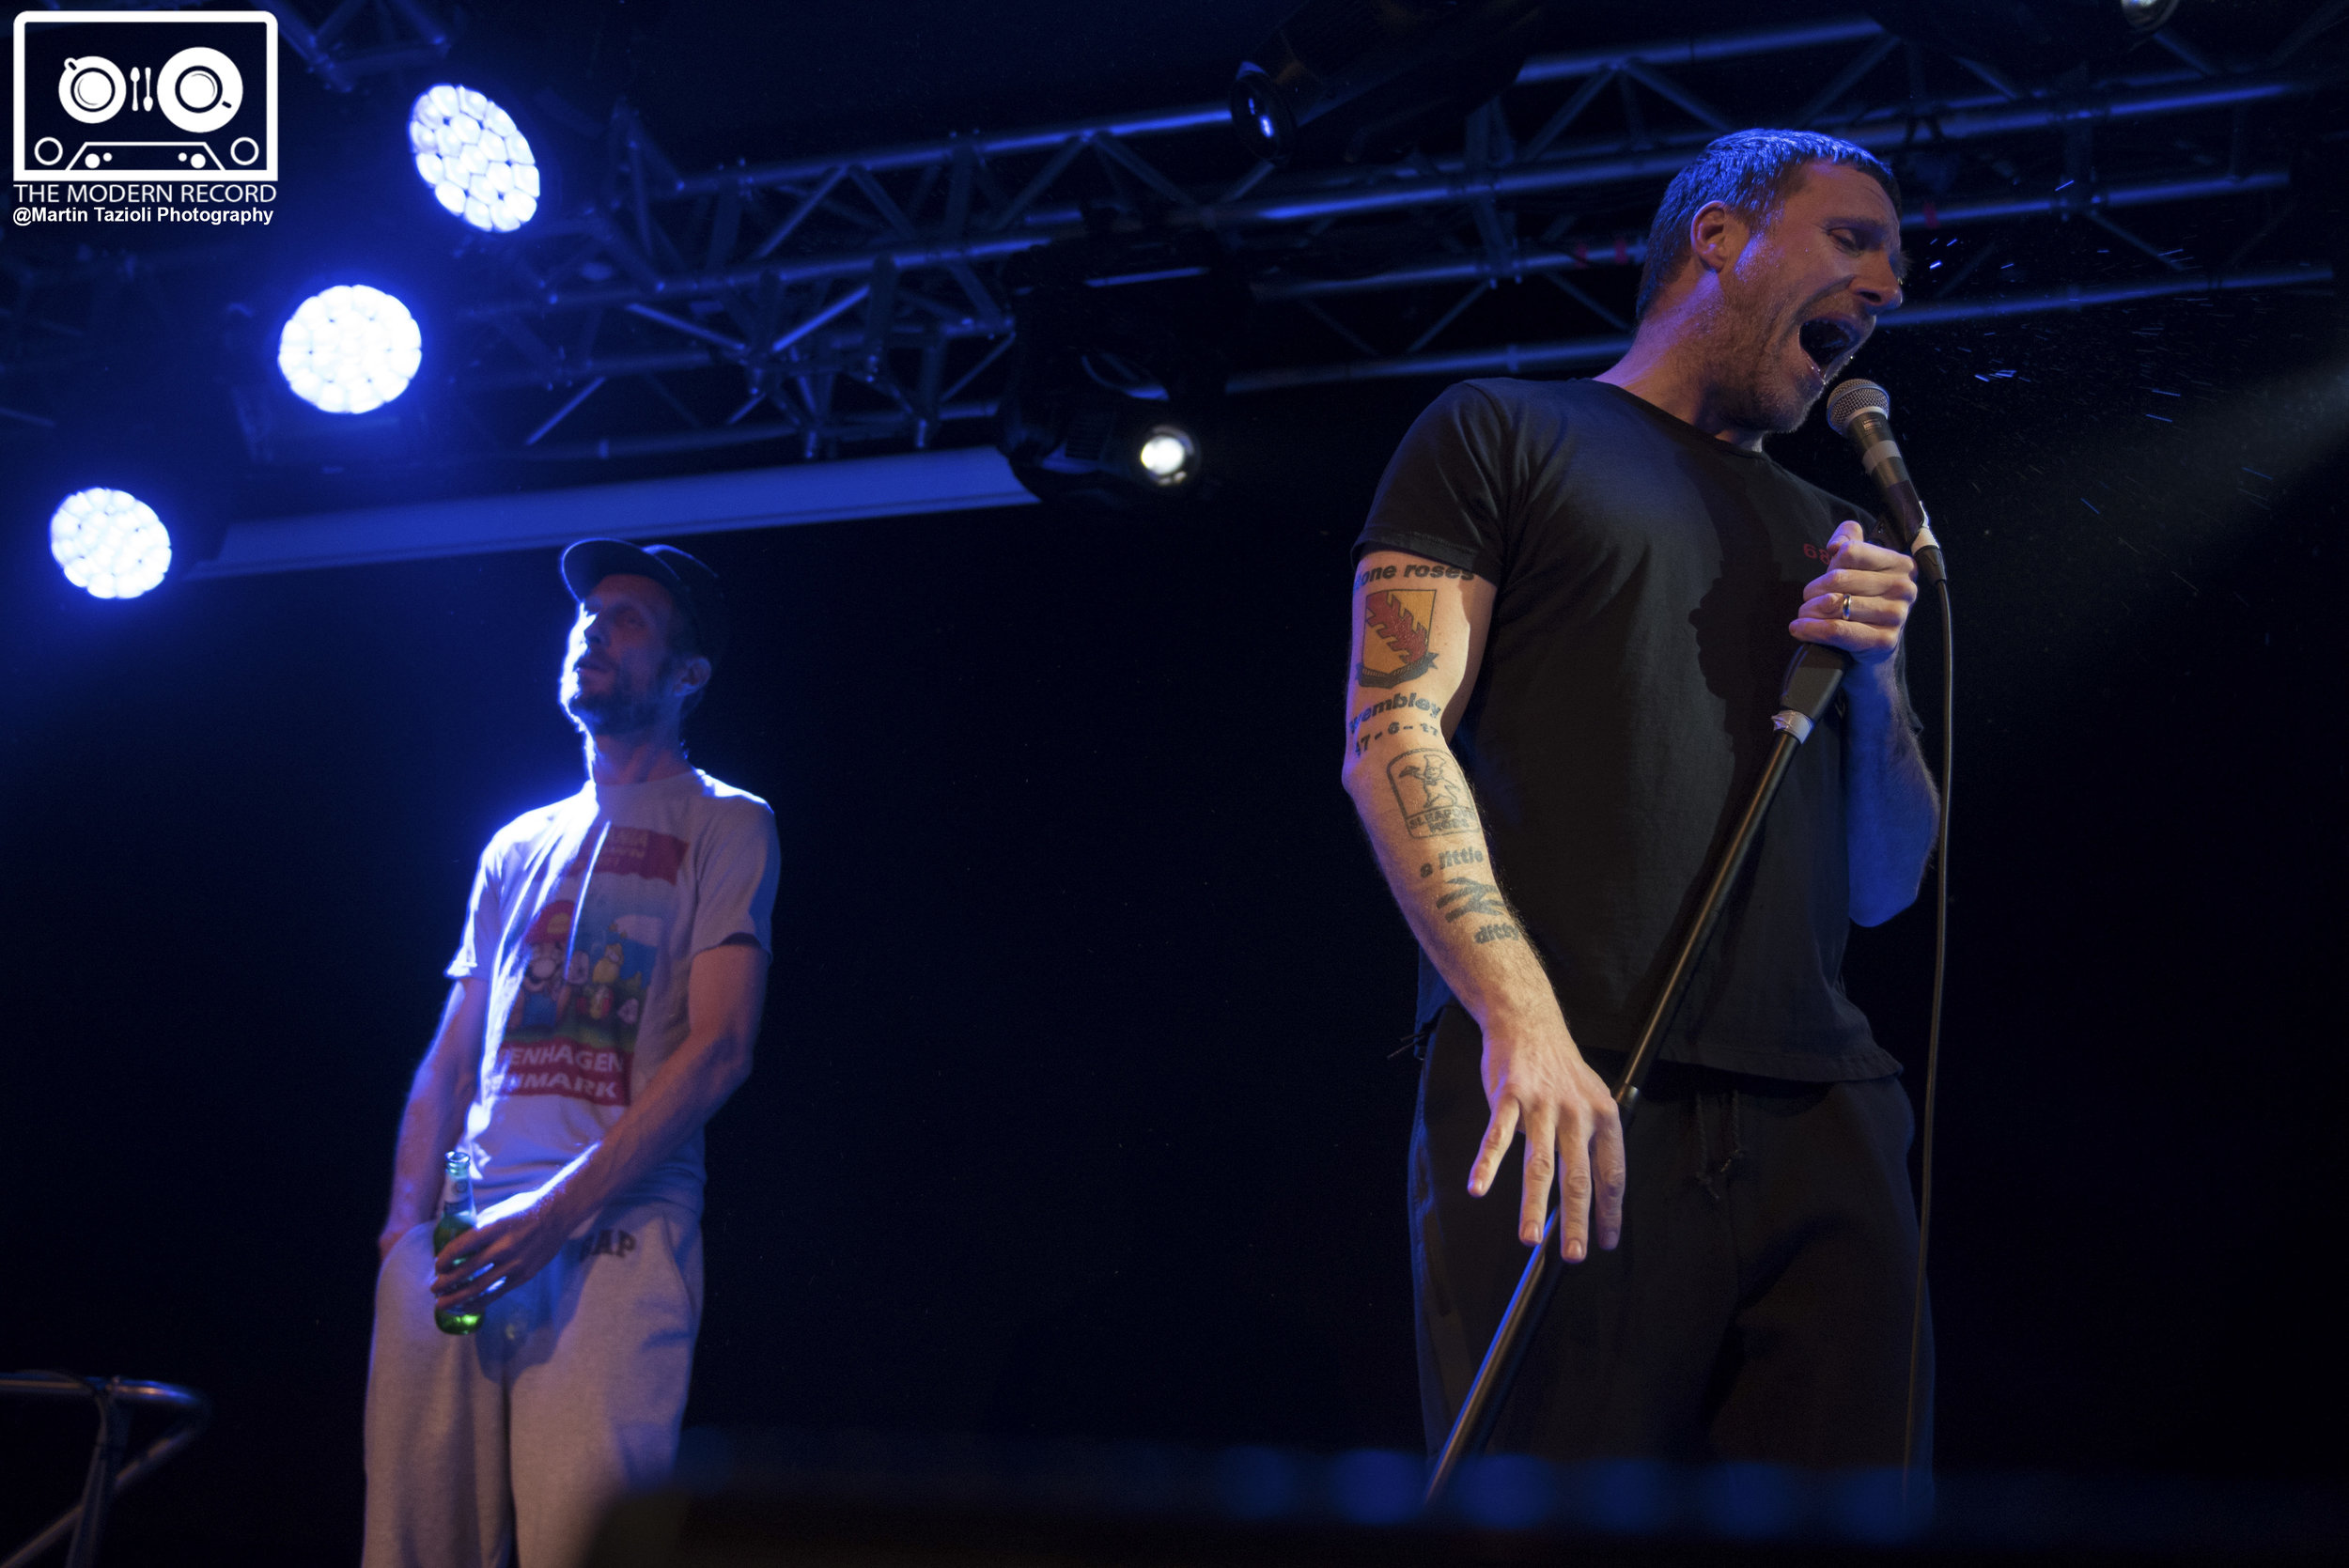 SLEAFORD MODS PERFORMING AT EDINBURGH'S LIQUID ROOMS - 06/10/2017  PICTURE BY: MARTIN TAZIOLI PHOTOGRAPHY